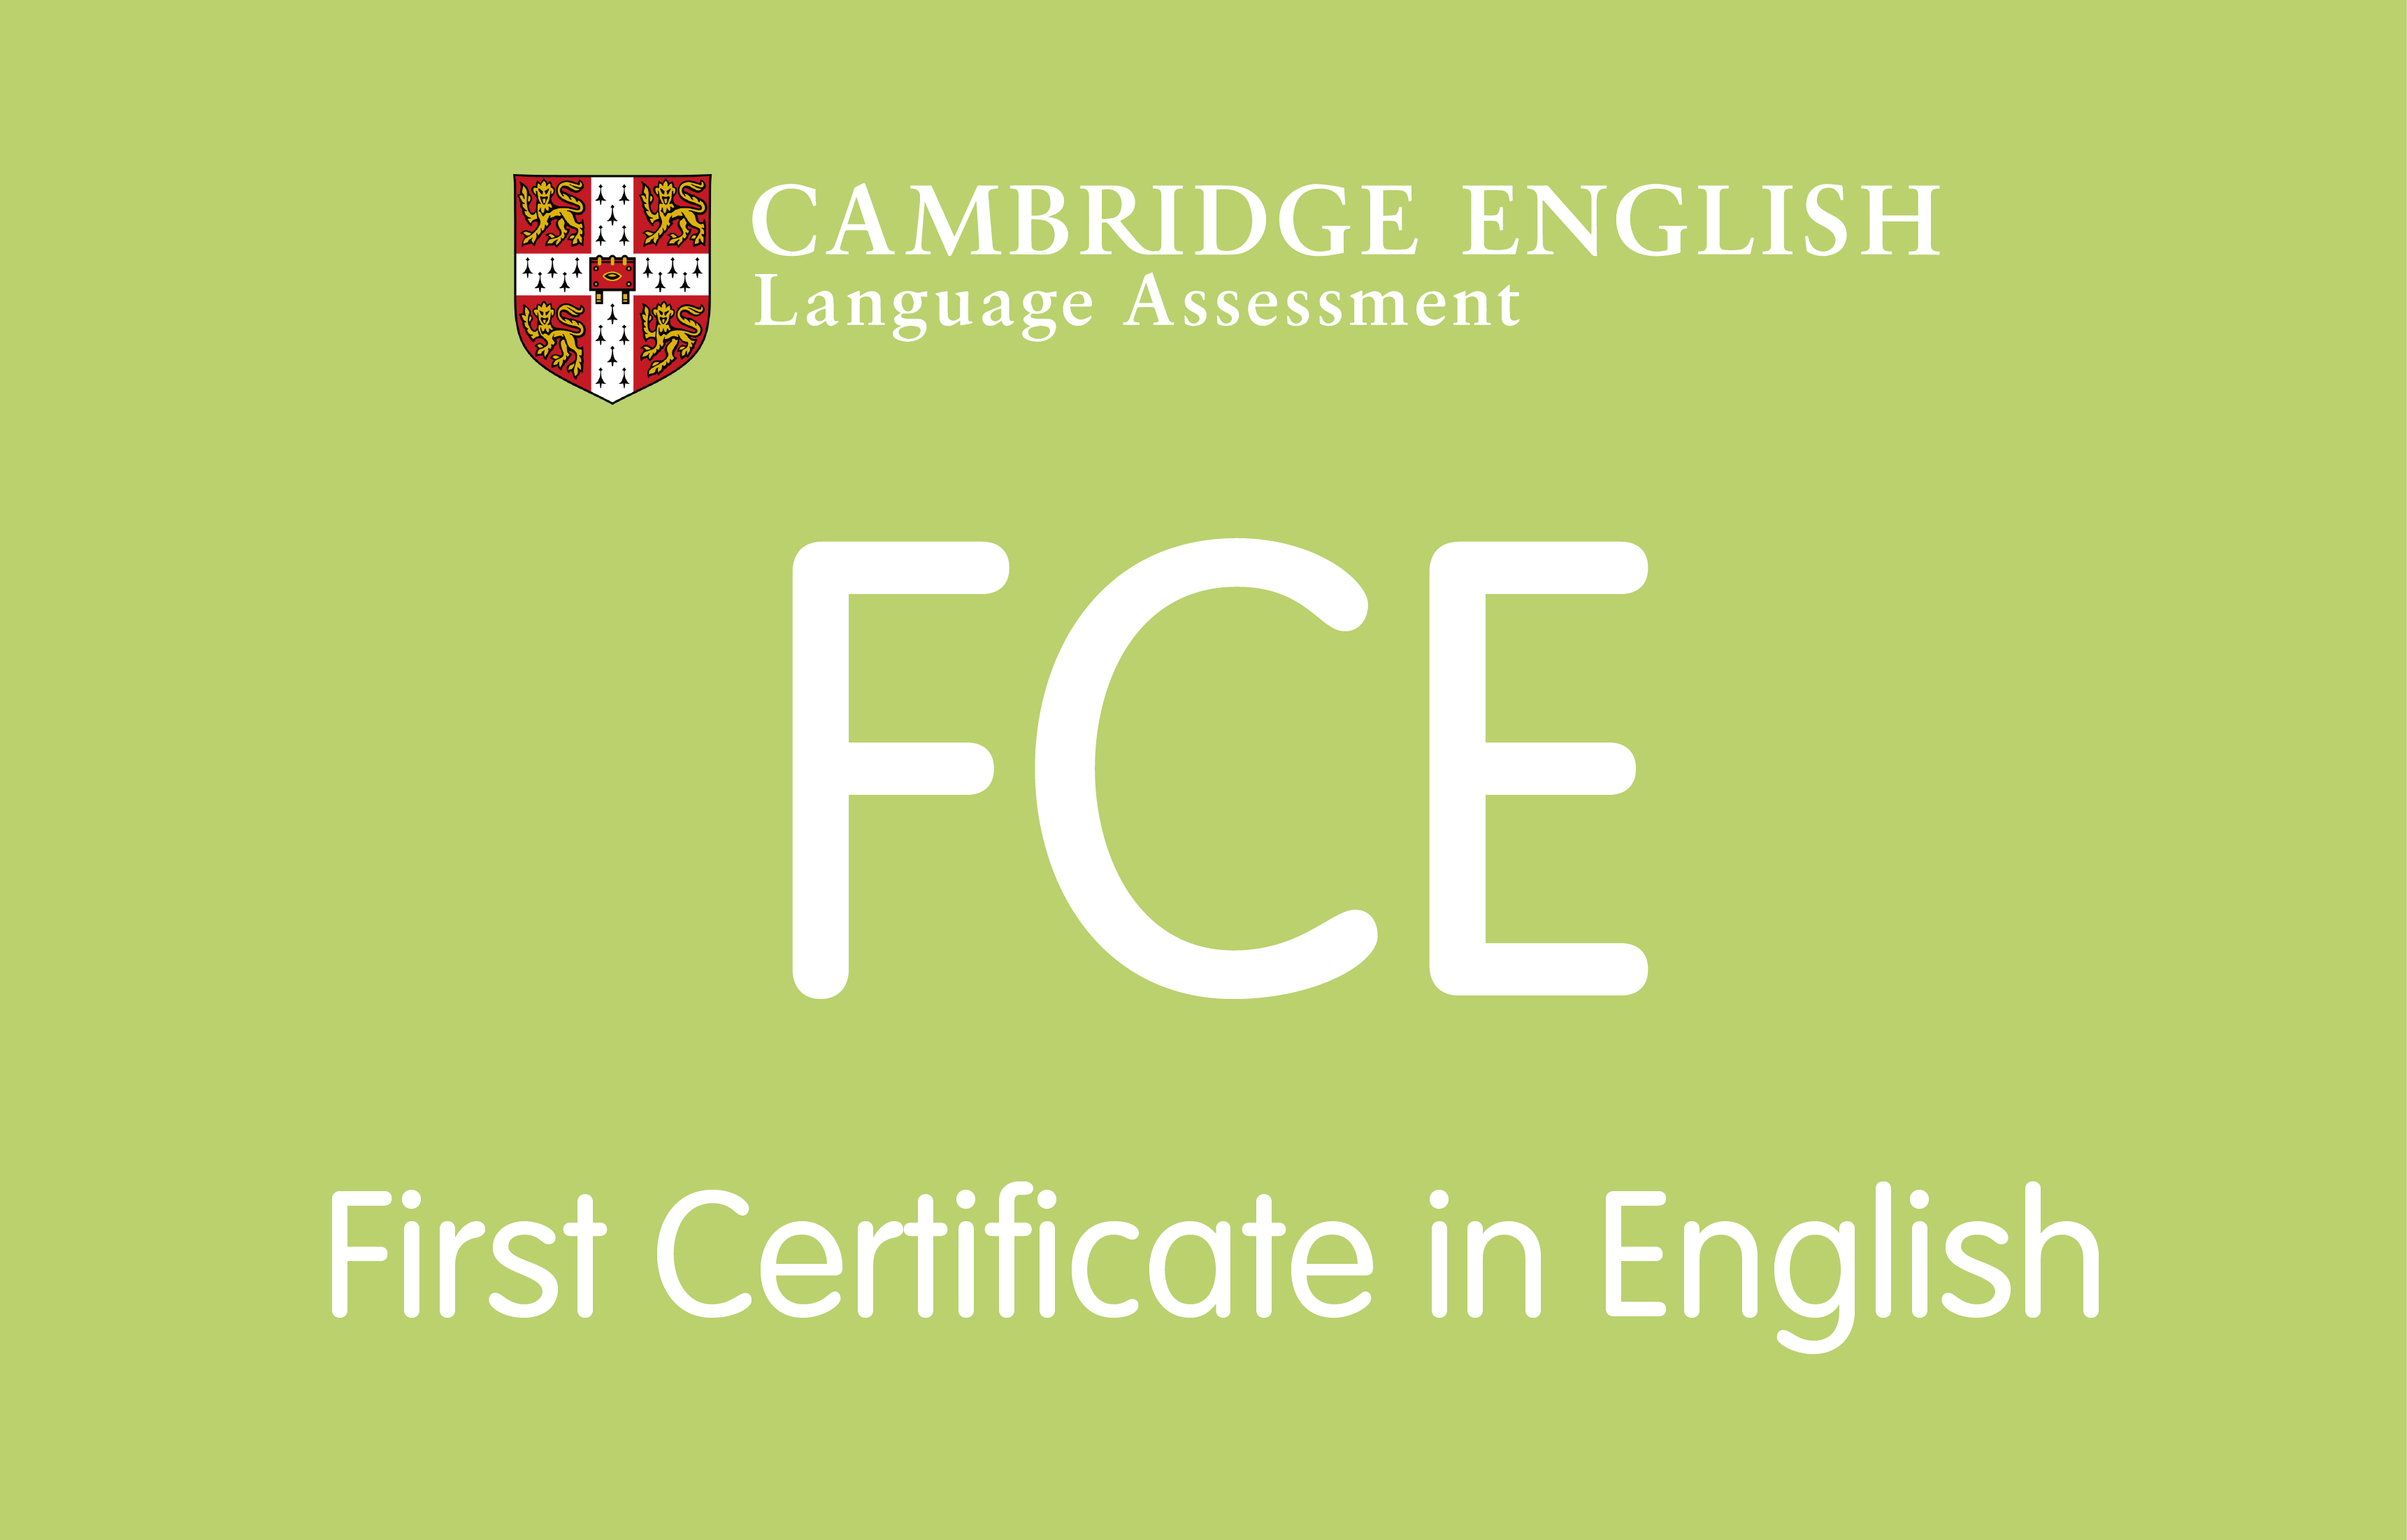 Learntalk testprepcategoryicons cambridge studies 03